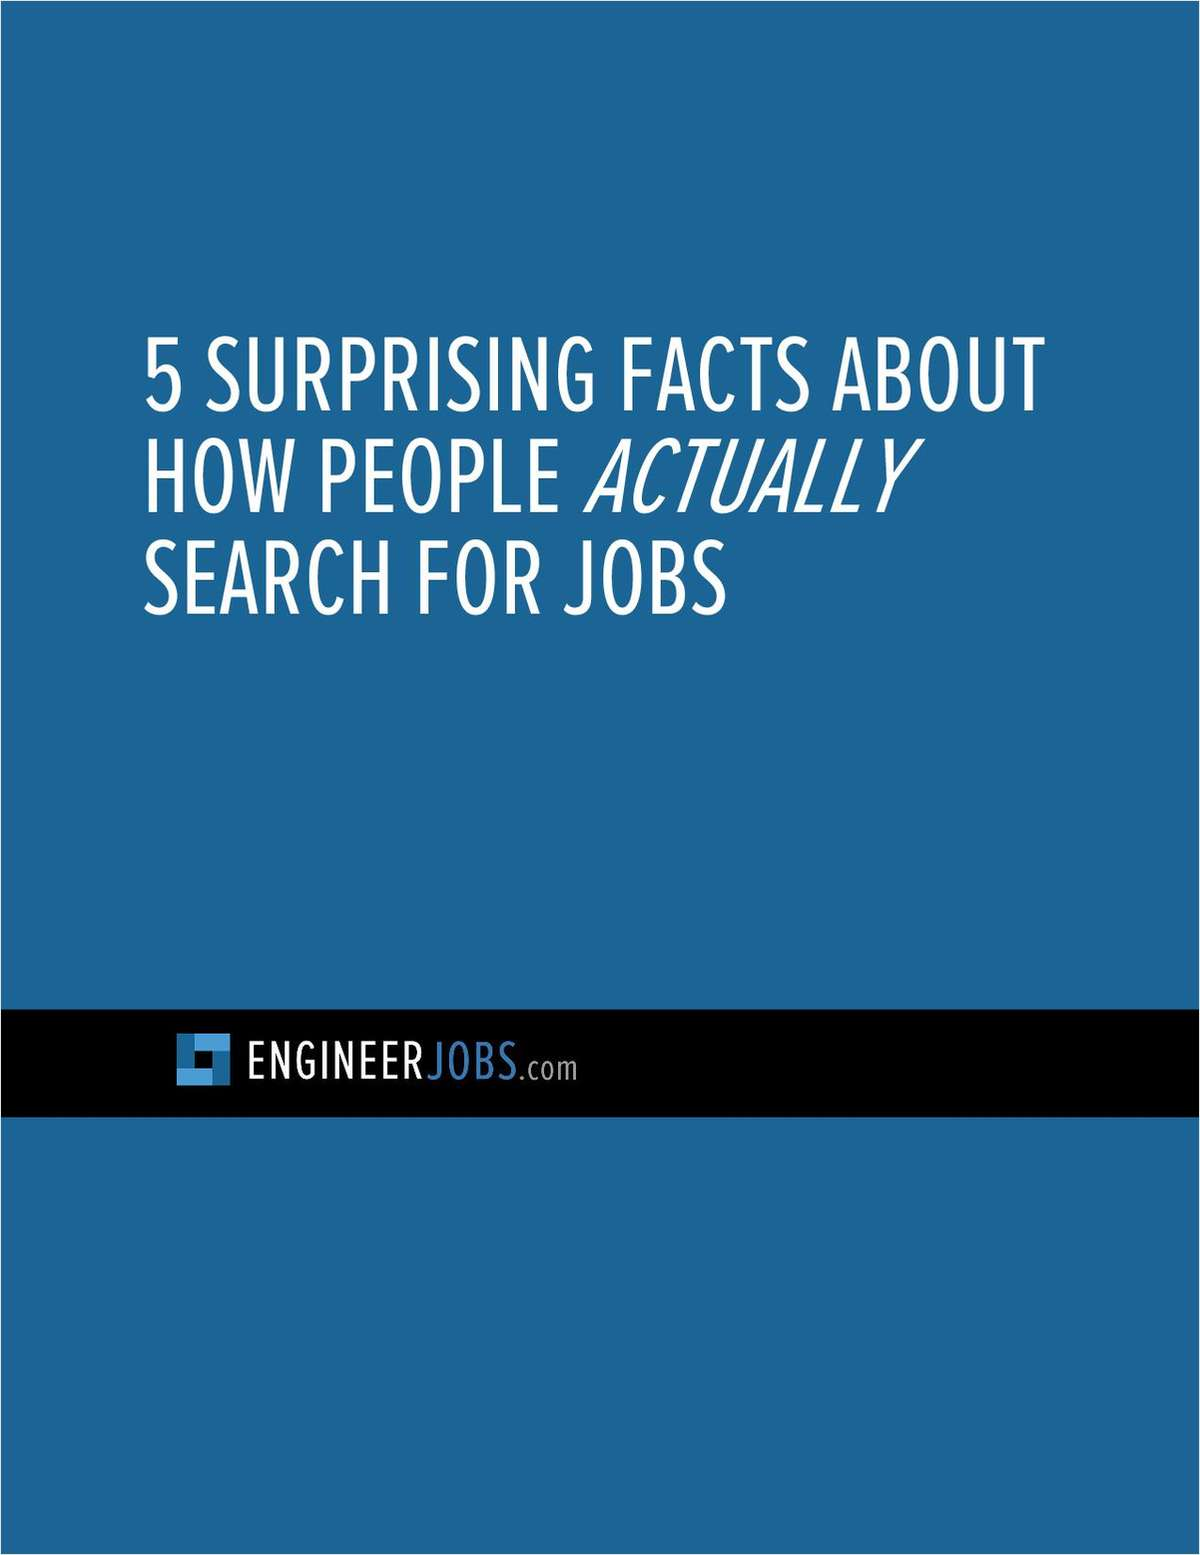 5 Surprising Facts About How People Actually Search For Jobs